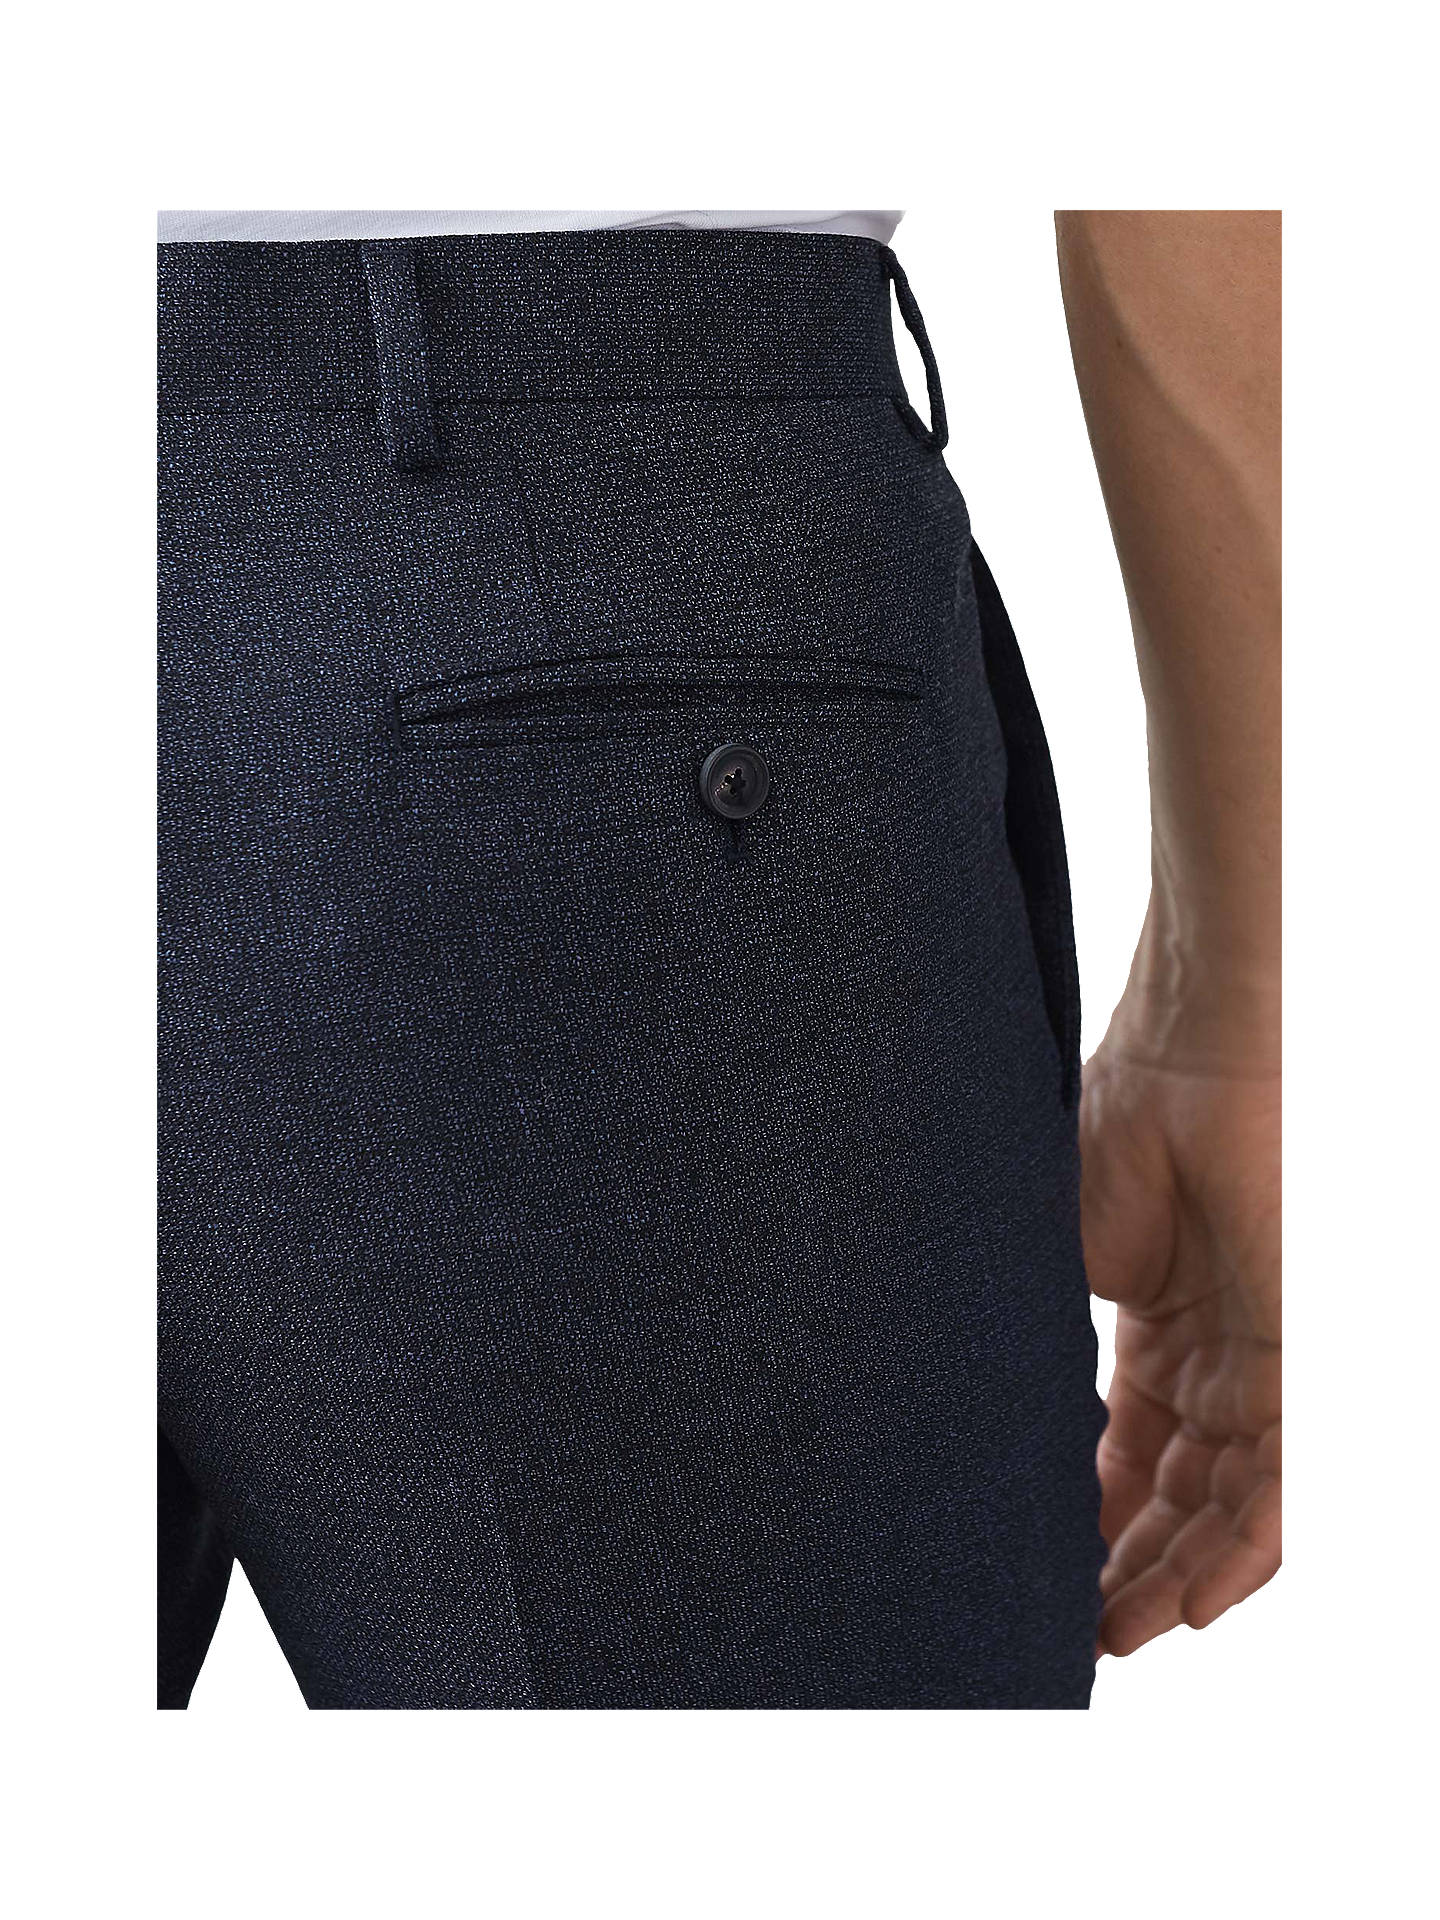 Buy Reiss Vapour Textured Slim Fit Suit Trousers, Indigo, 30R Online at johnlewis.com